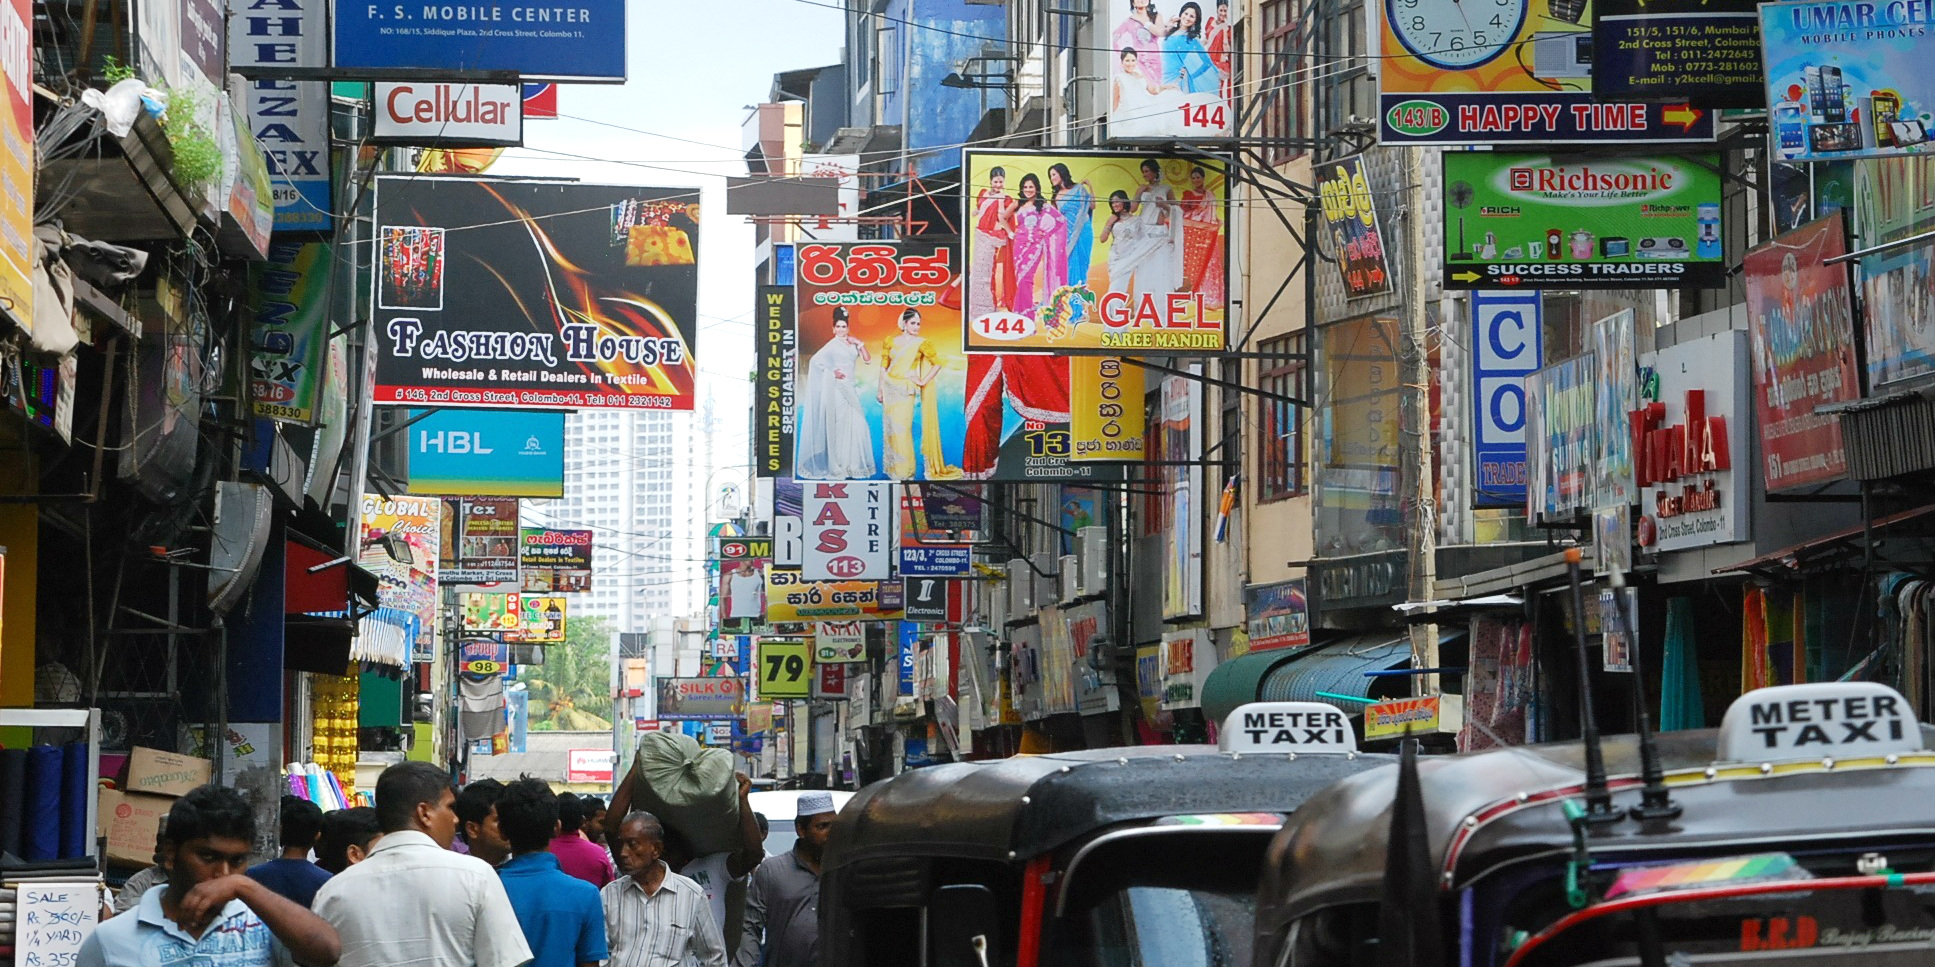 Cities in India can be busier that visitors are used to. This is one of the things to know before travelling to India.